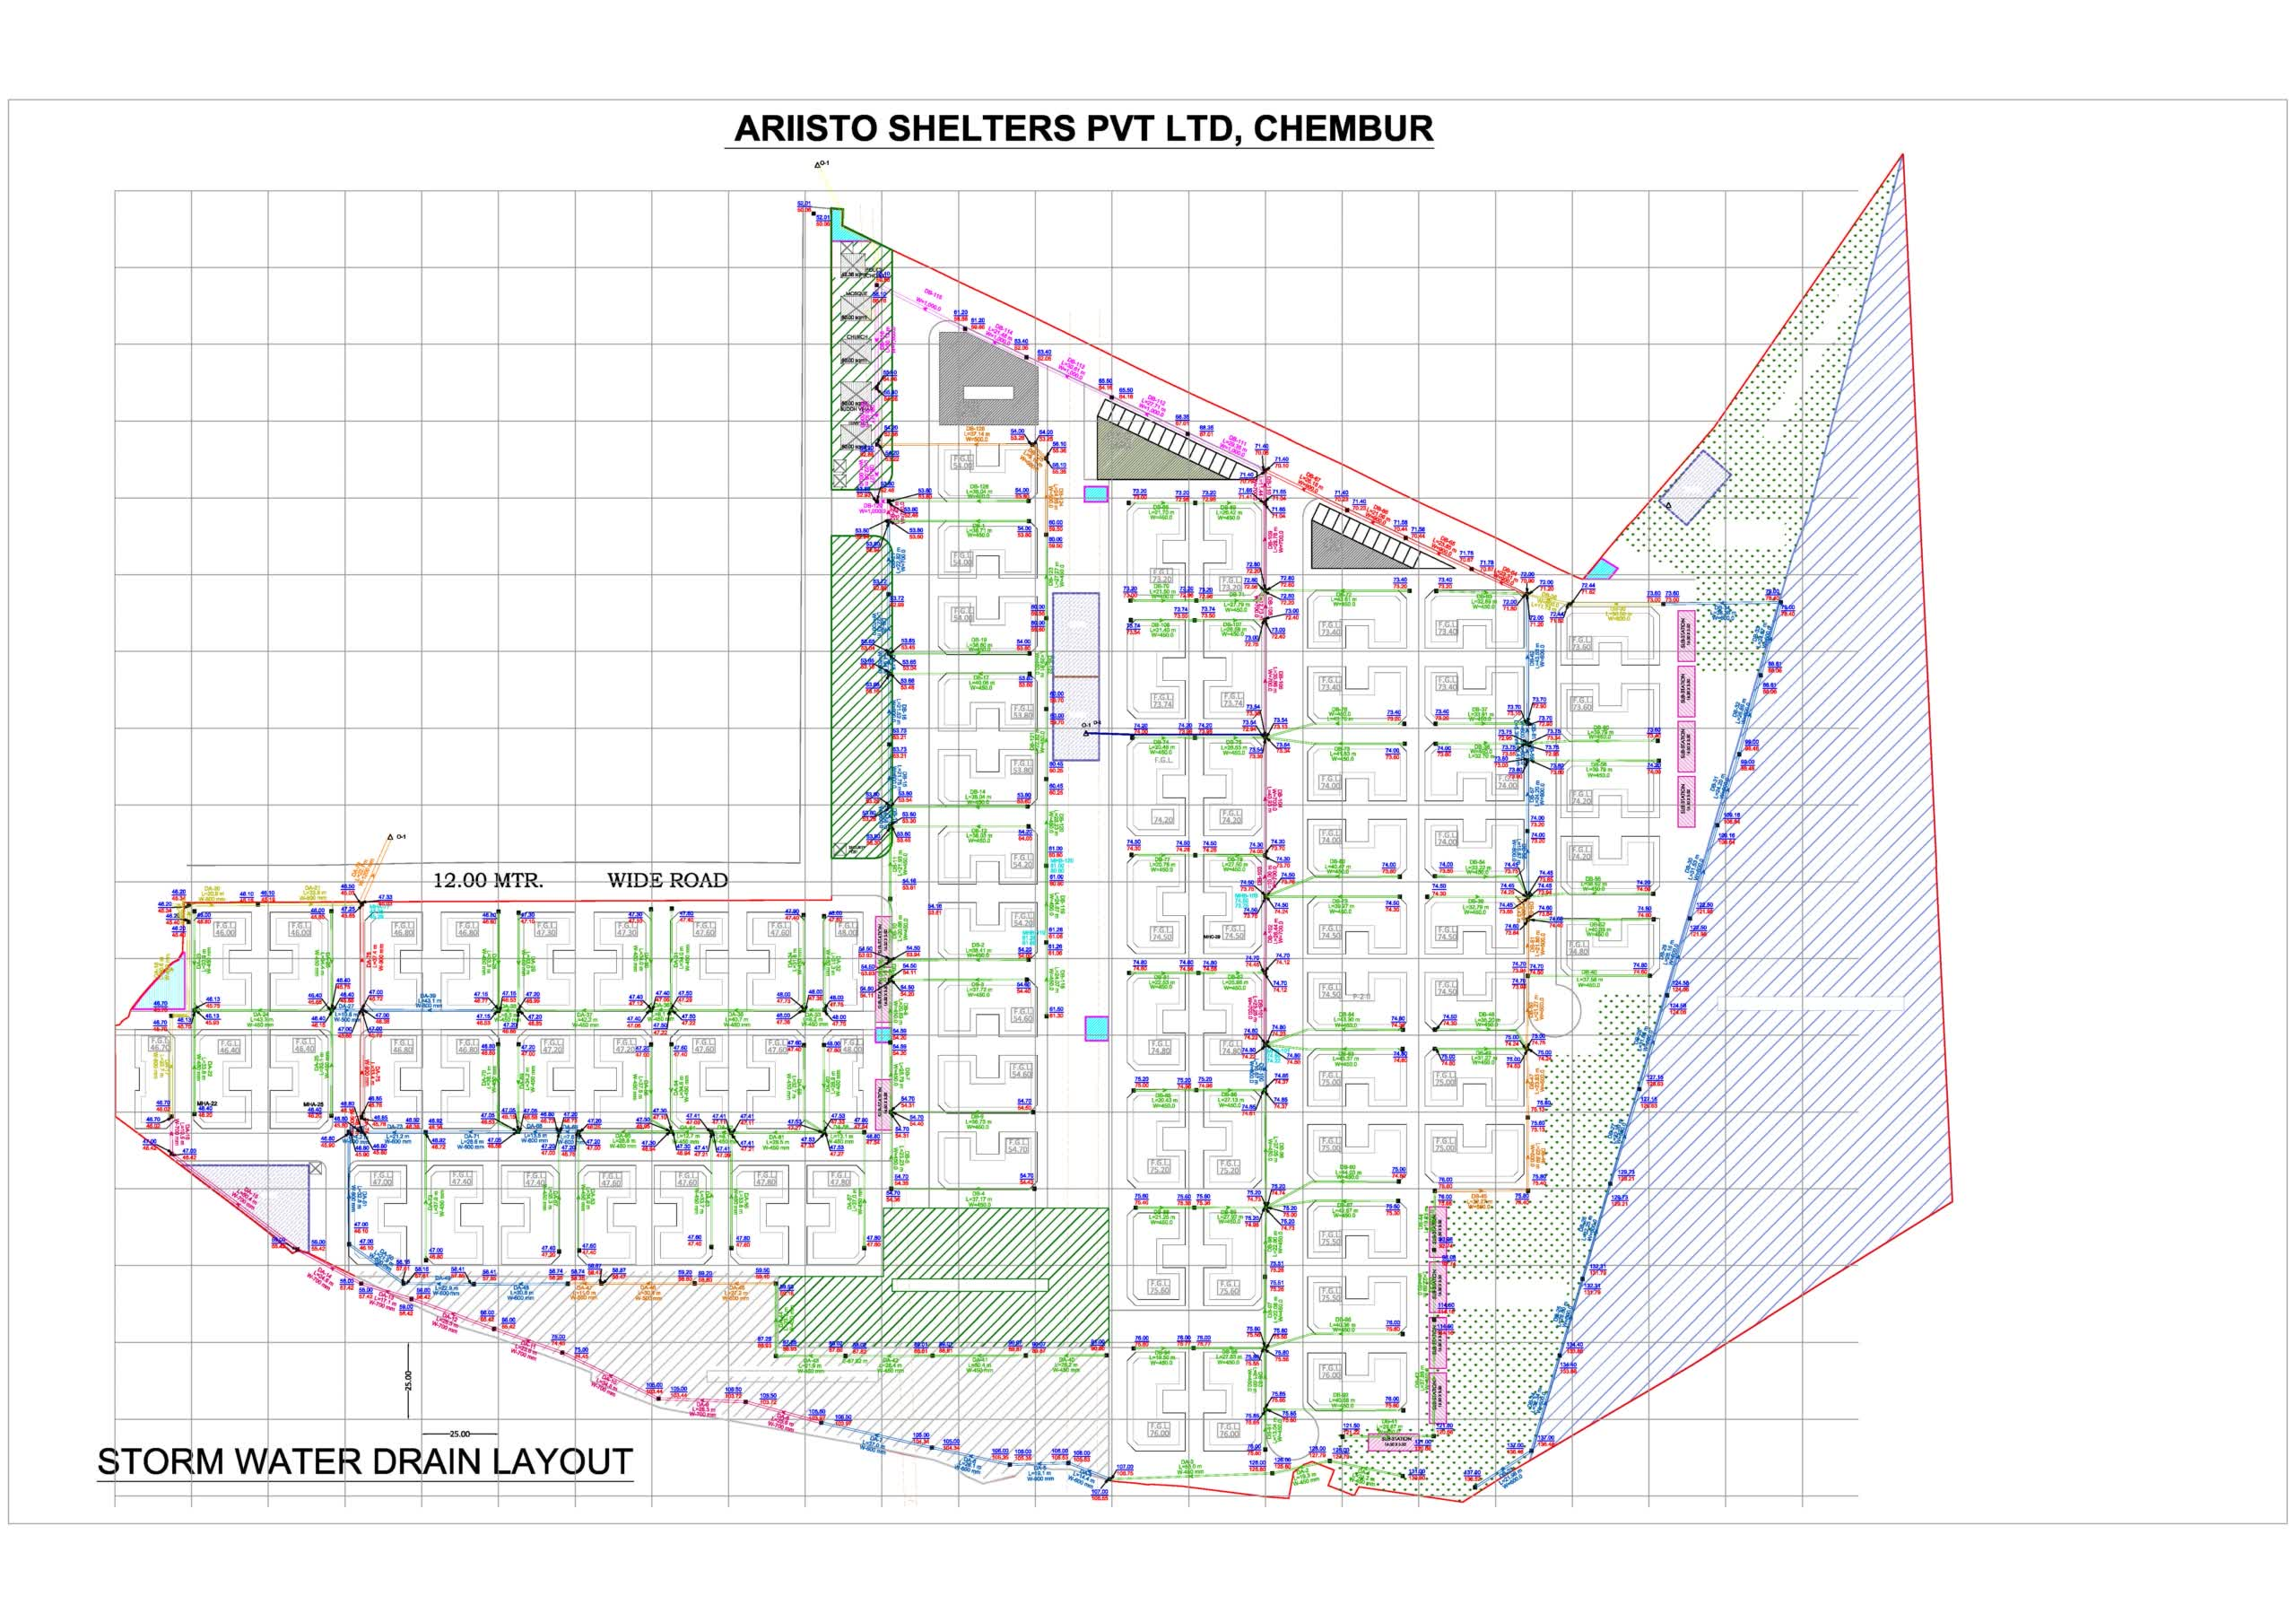 Storm Water Drain Chembur - Arristo Group - Sthapati India